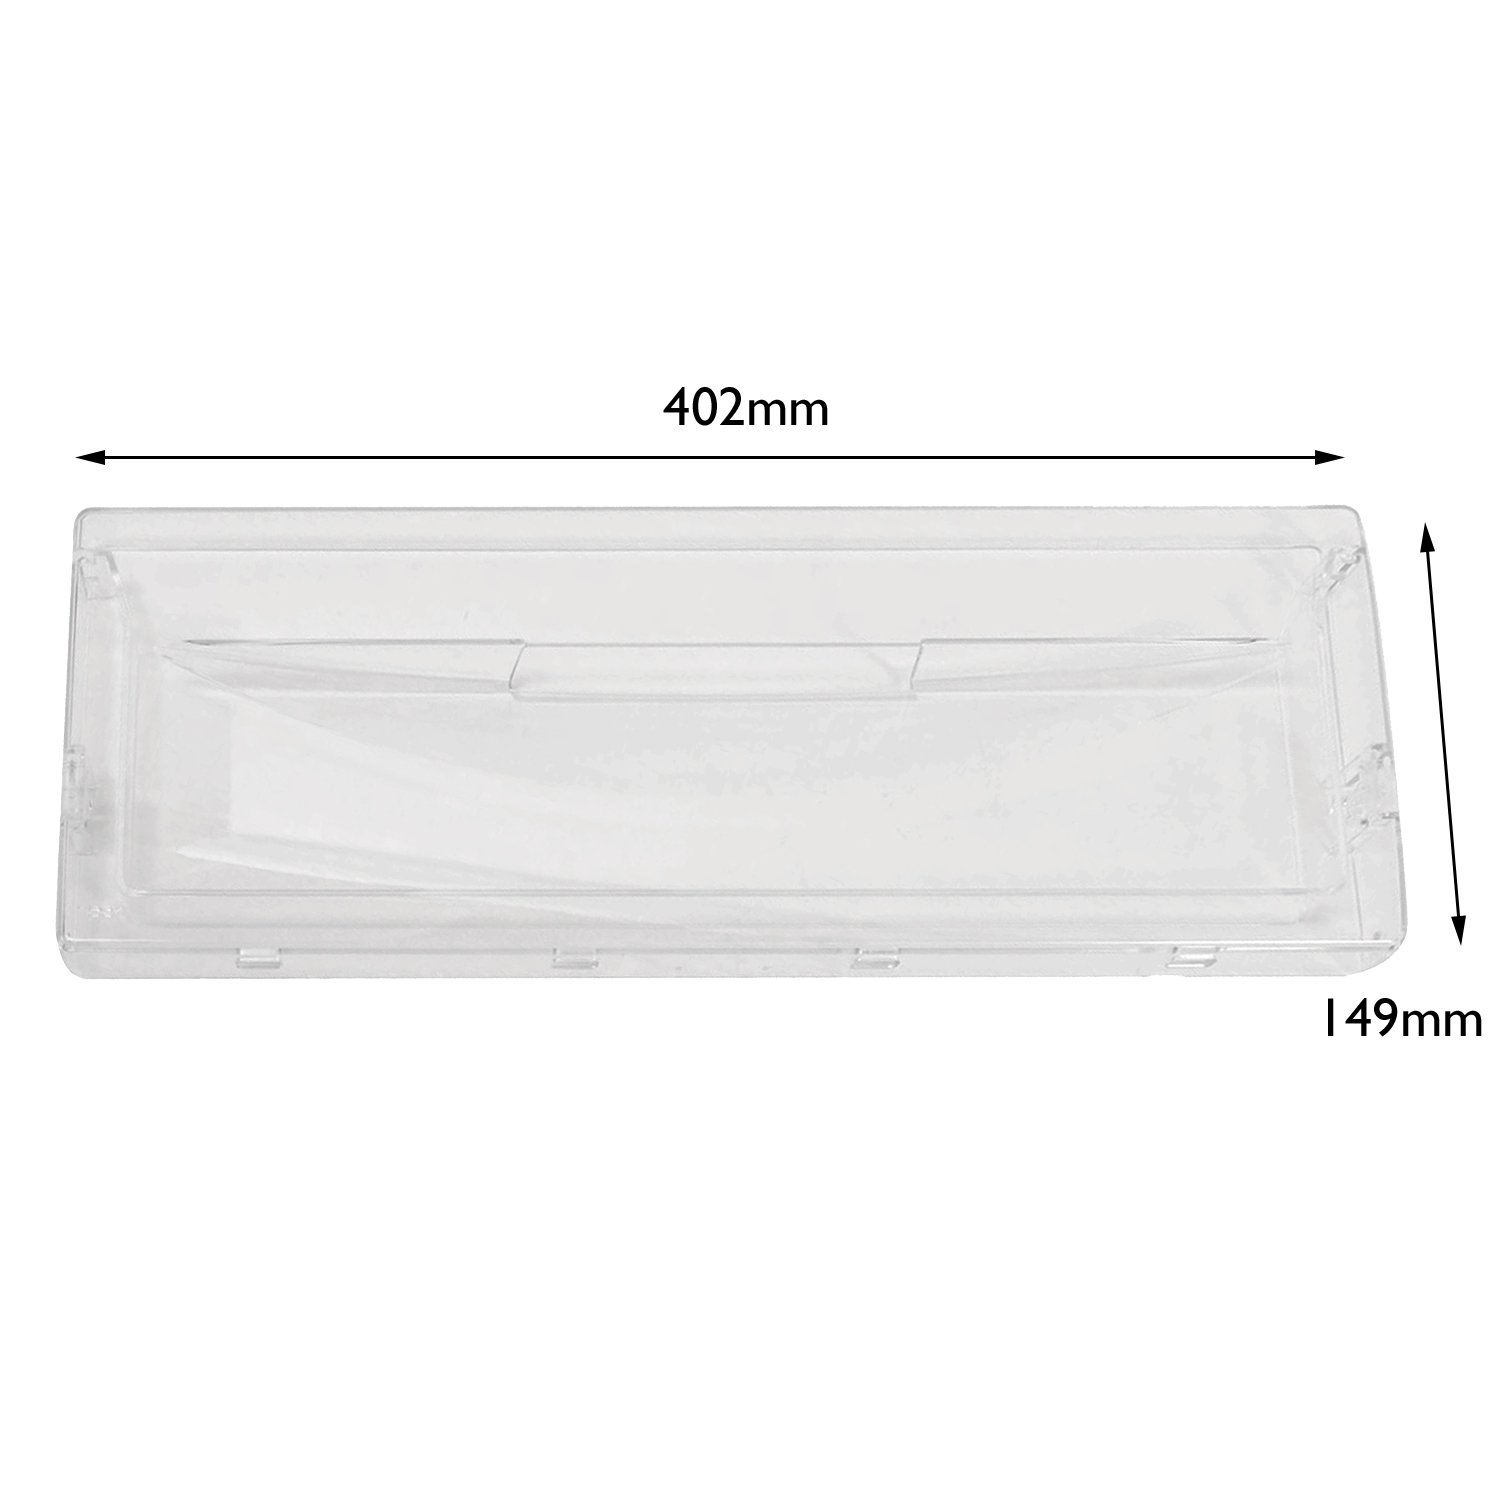 SPARES2GO Transparent Basket Drawer Front Flap for Scholtes Fridge Freezer